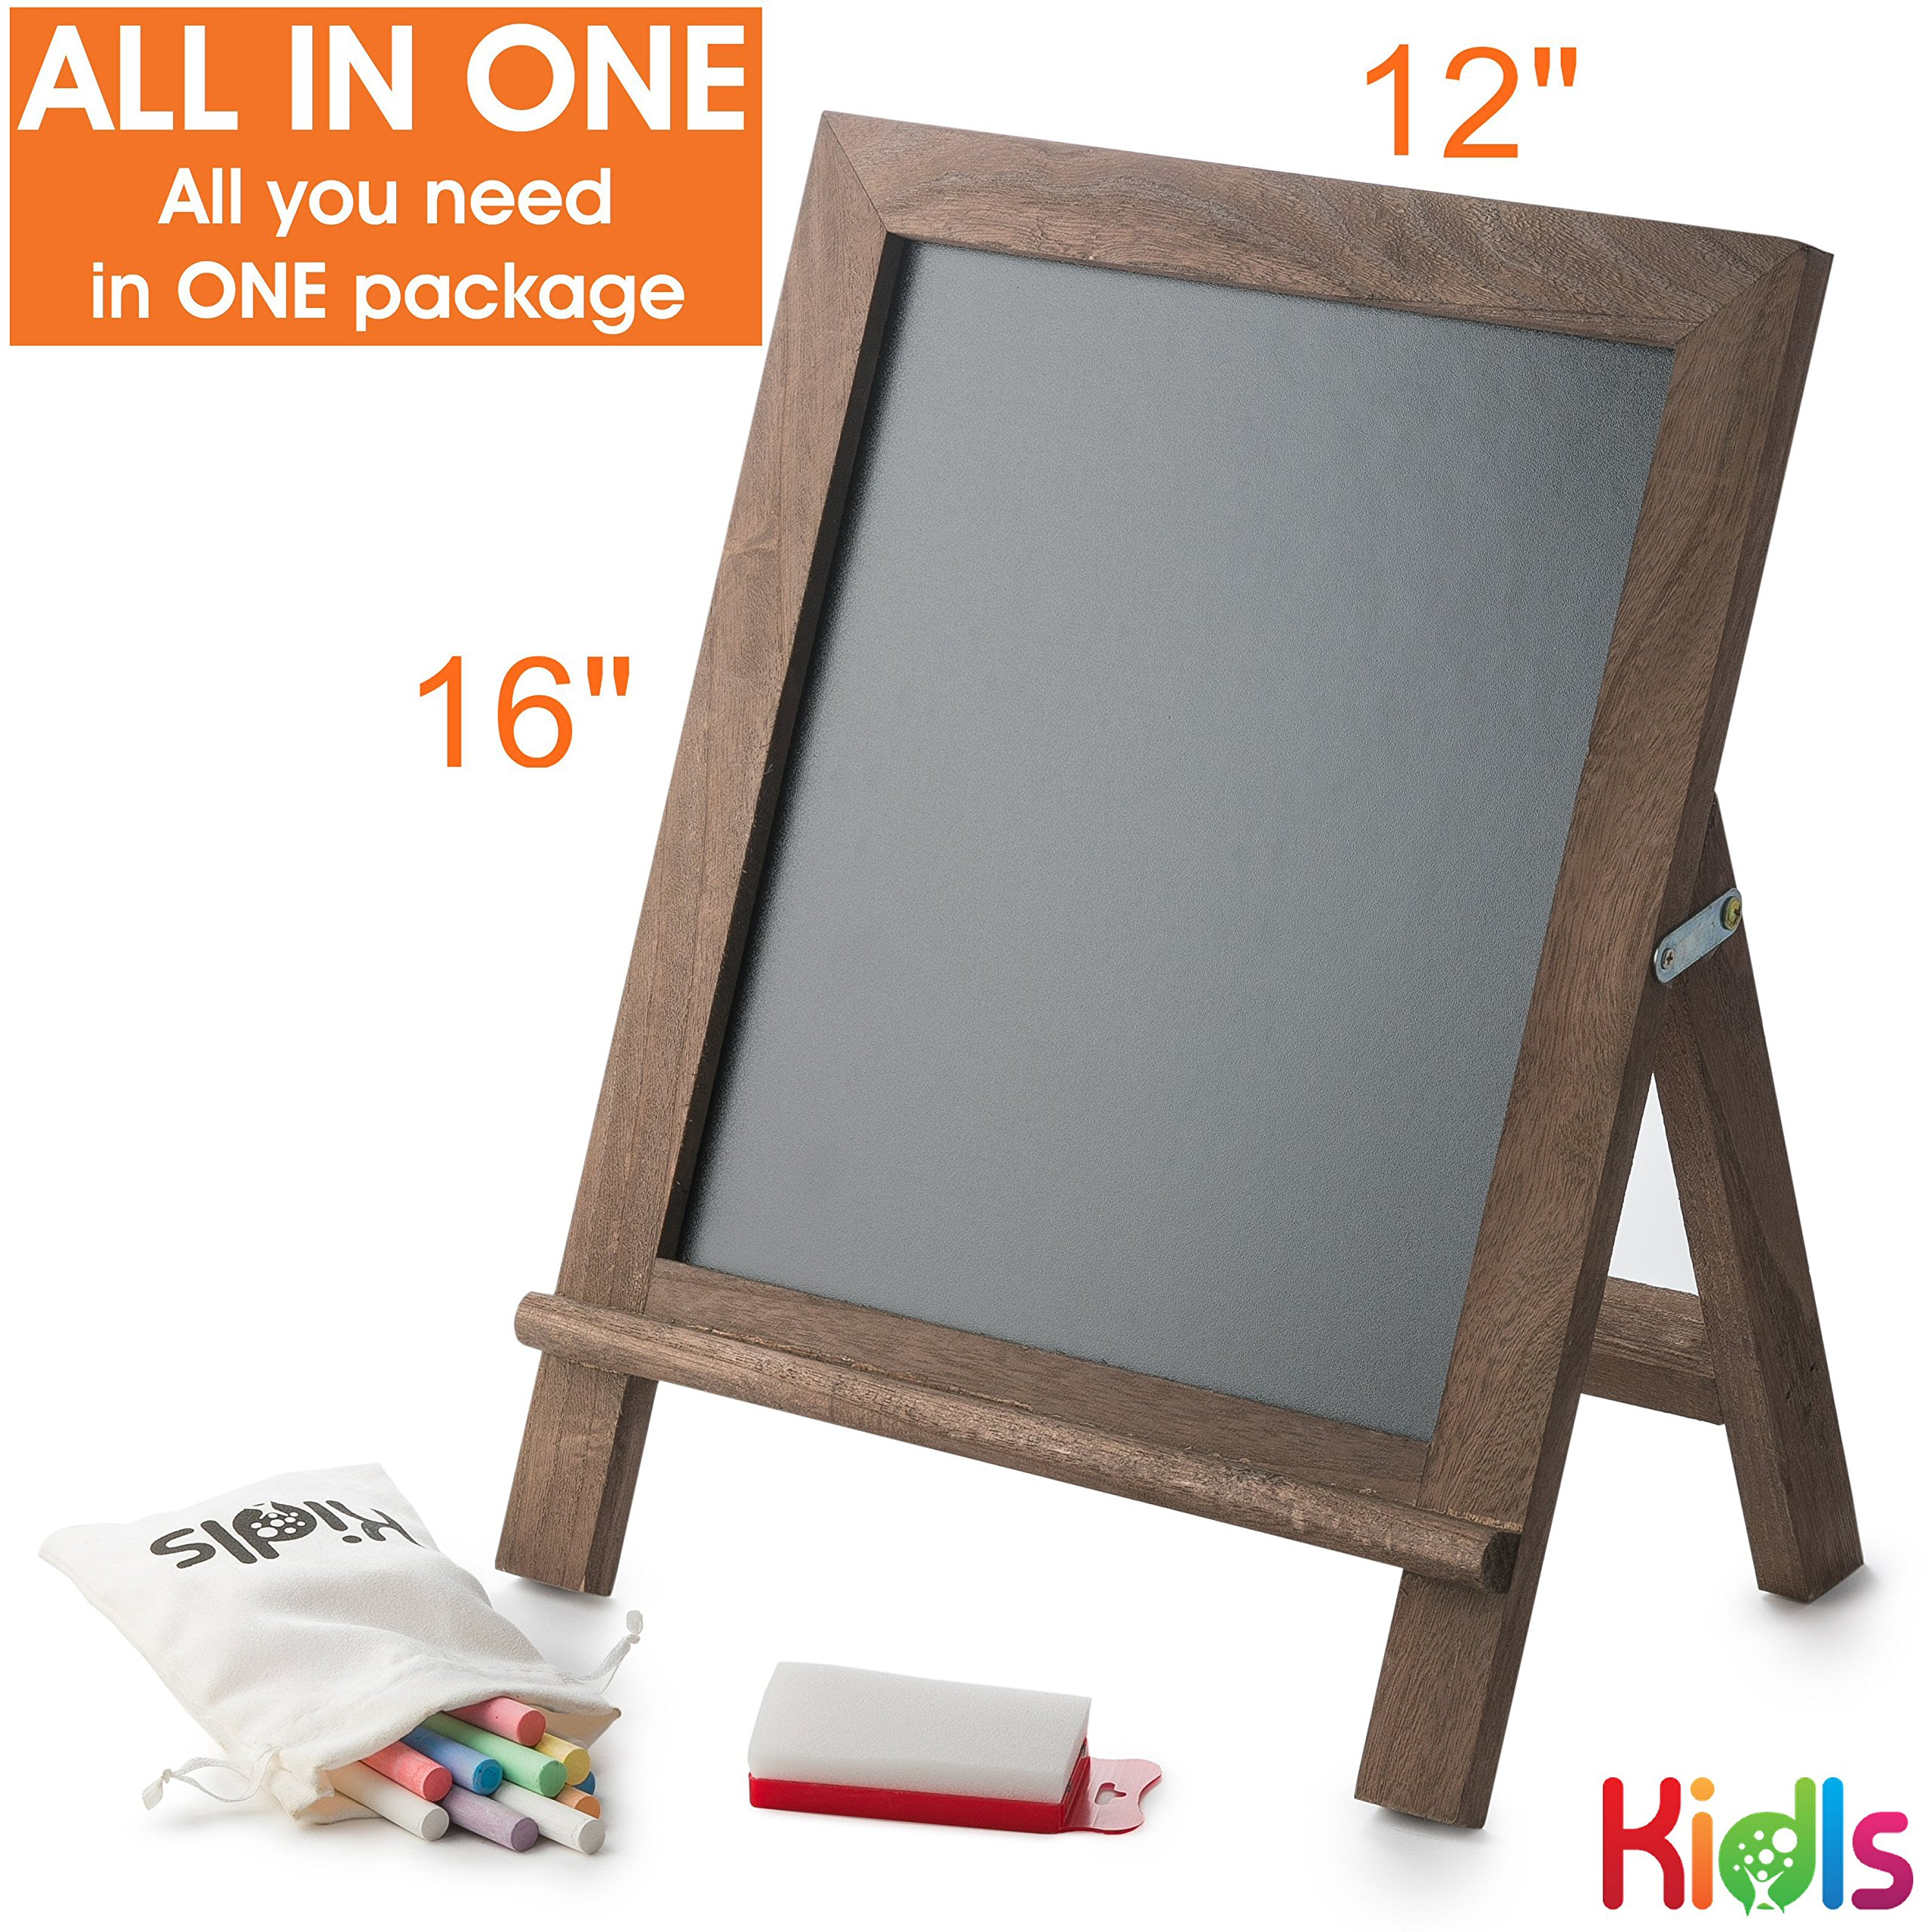 Premium Wood Framed Rustic Standing Chalkboard 12 x 16. Non-Porous Vinyl Surface. For Home, Bars, Restaurants and Weddings - for the Vintage Look! FREE BONUS: 24 chalks + Eraser + Storage Bag by KidisPro (Image #5)